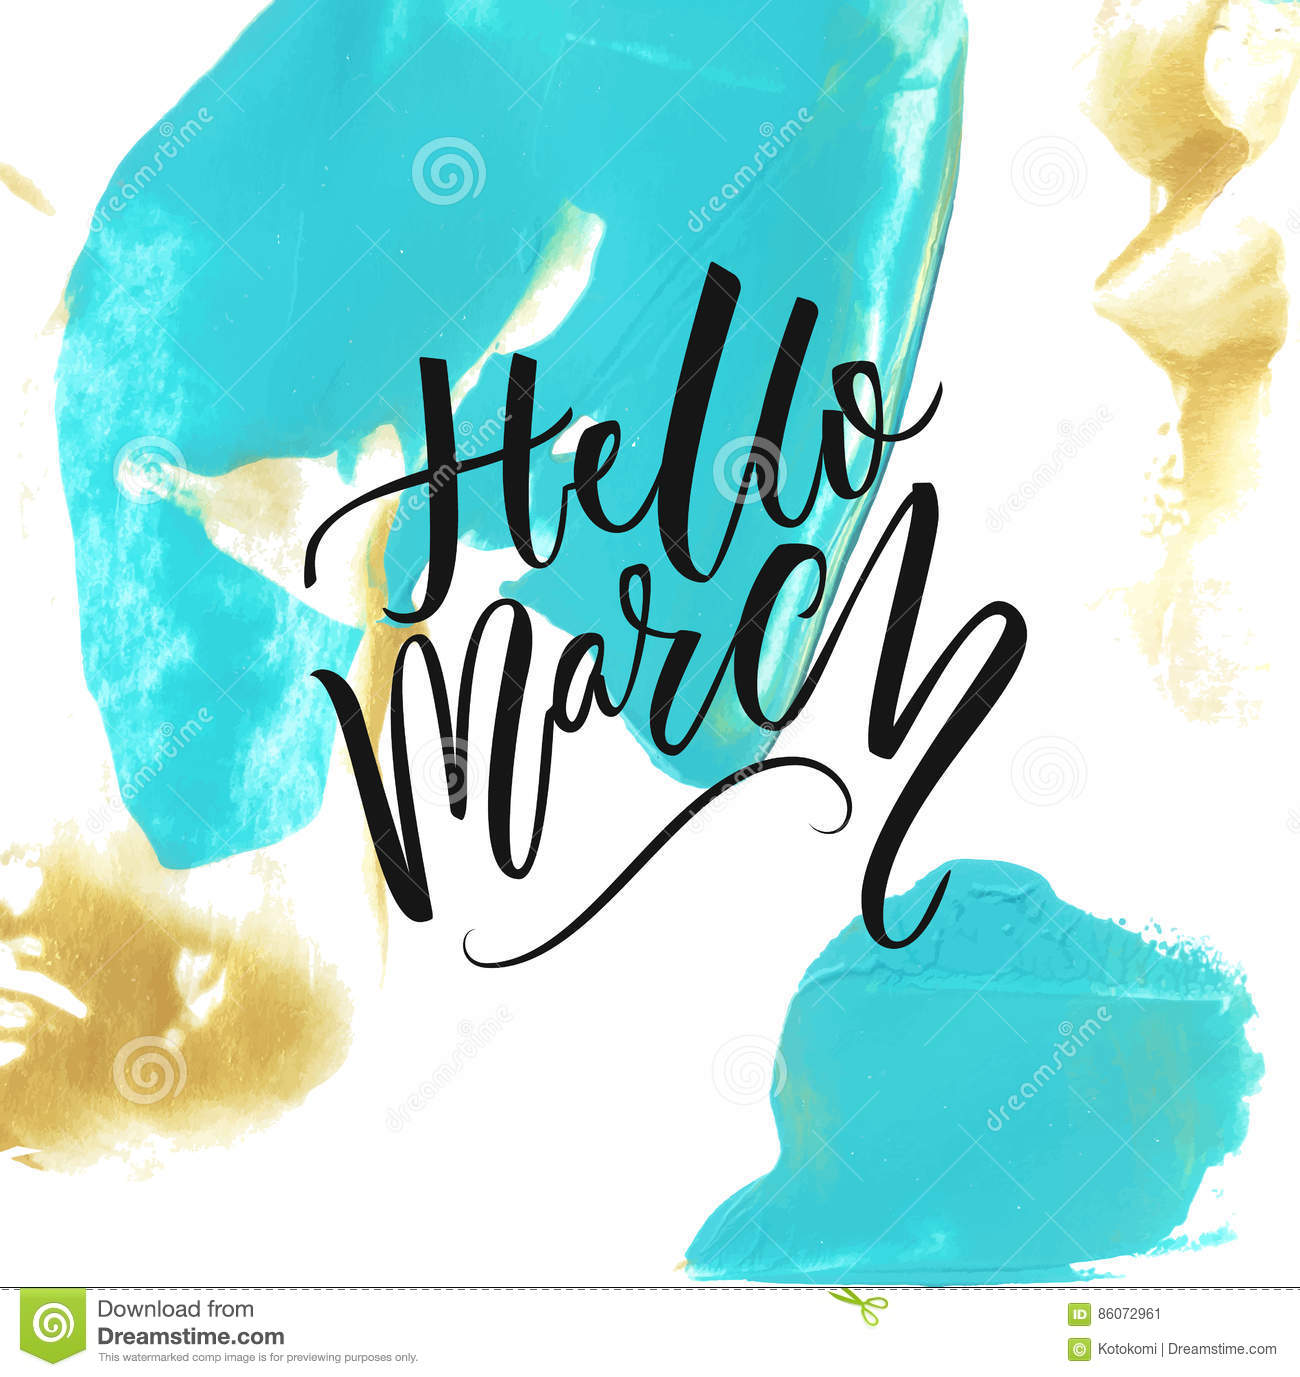 Hello March Text At Artistic Background With Blue And Gold Paint